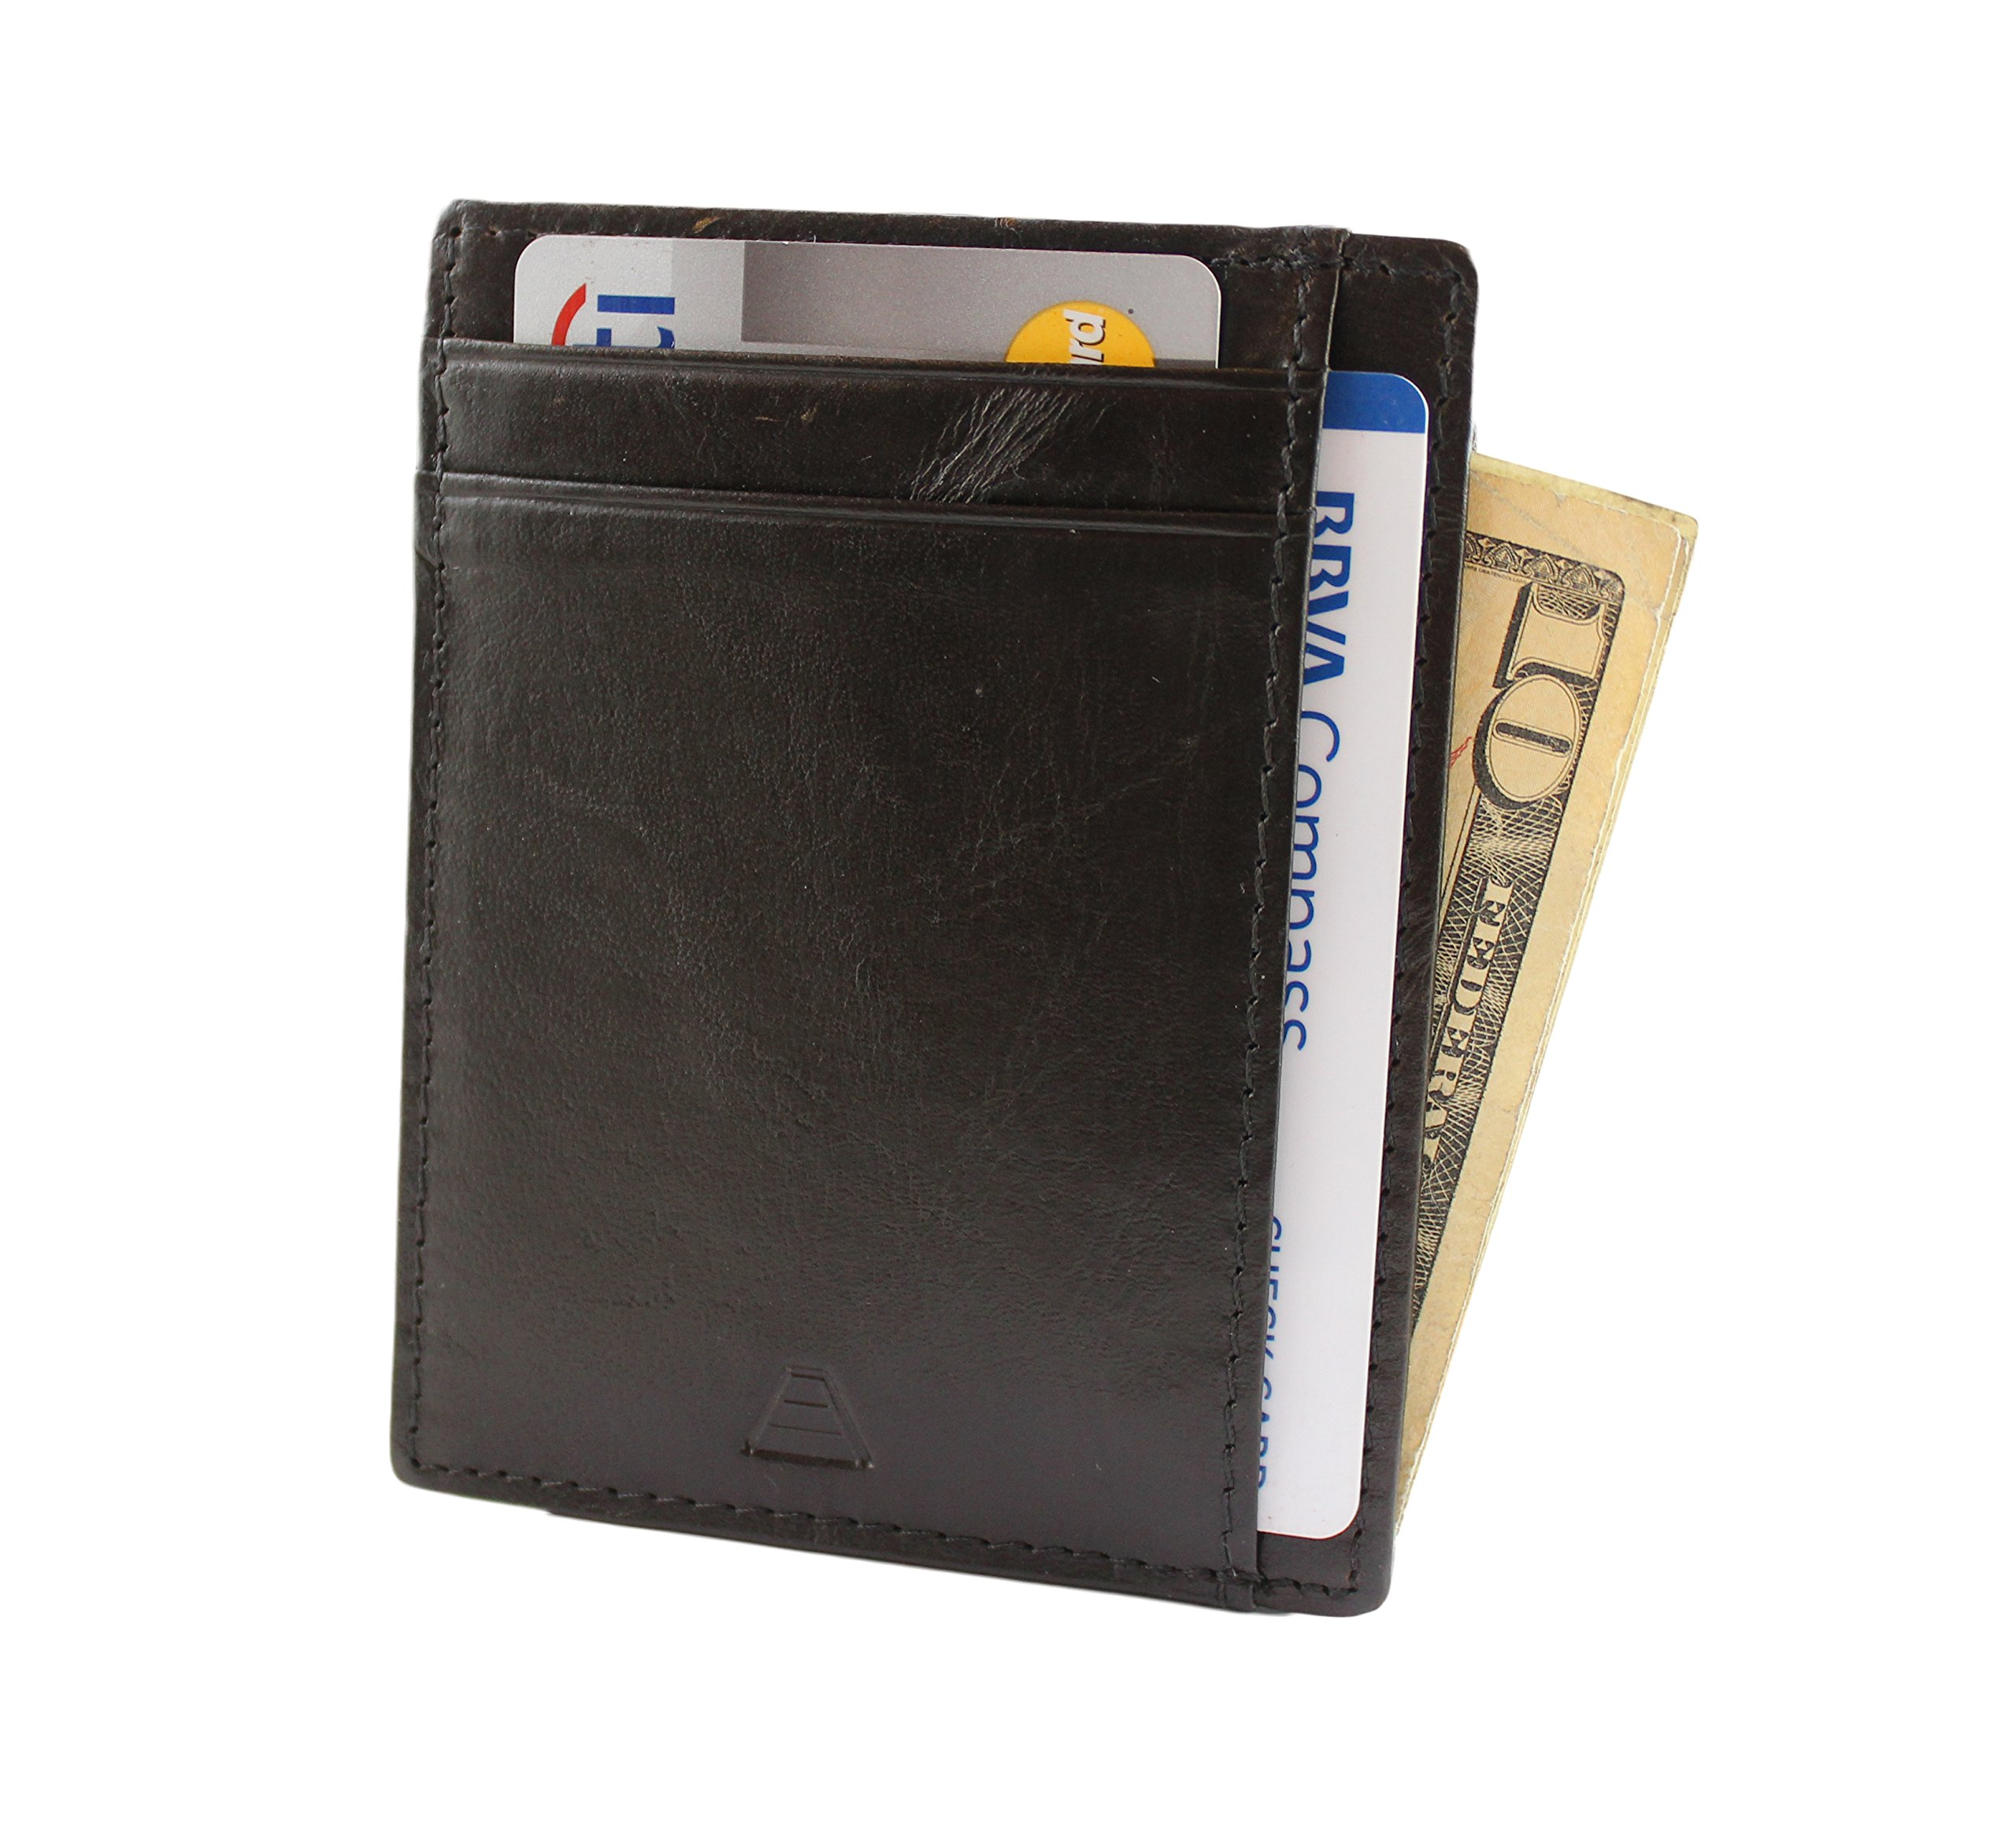 Andar RFID Minimalist Front Pocket Wallet - Made of Classy Full Grain Leather (Black) by Andar (Image #1)